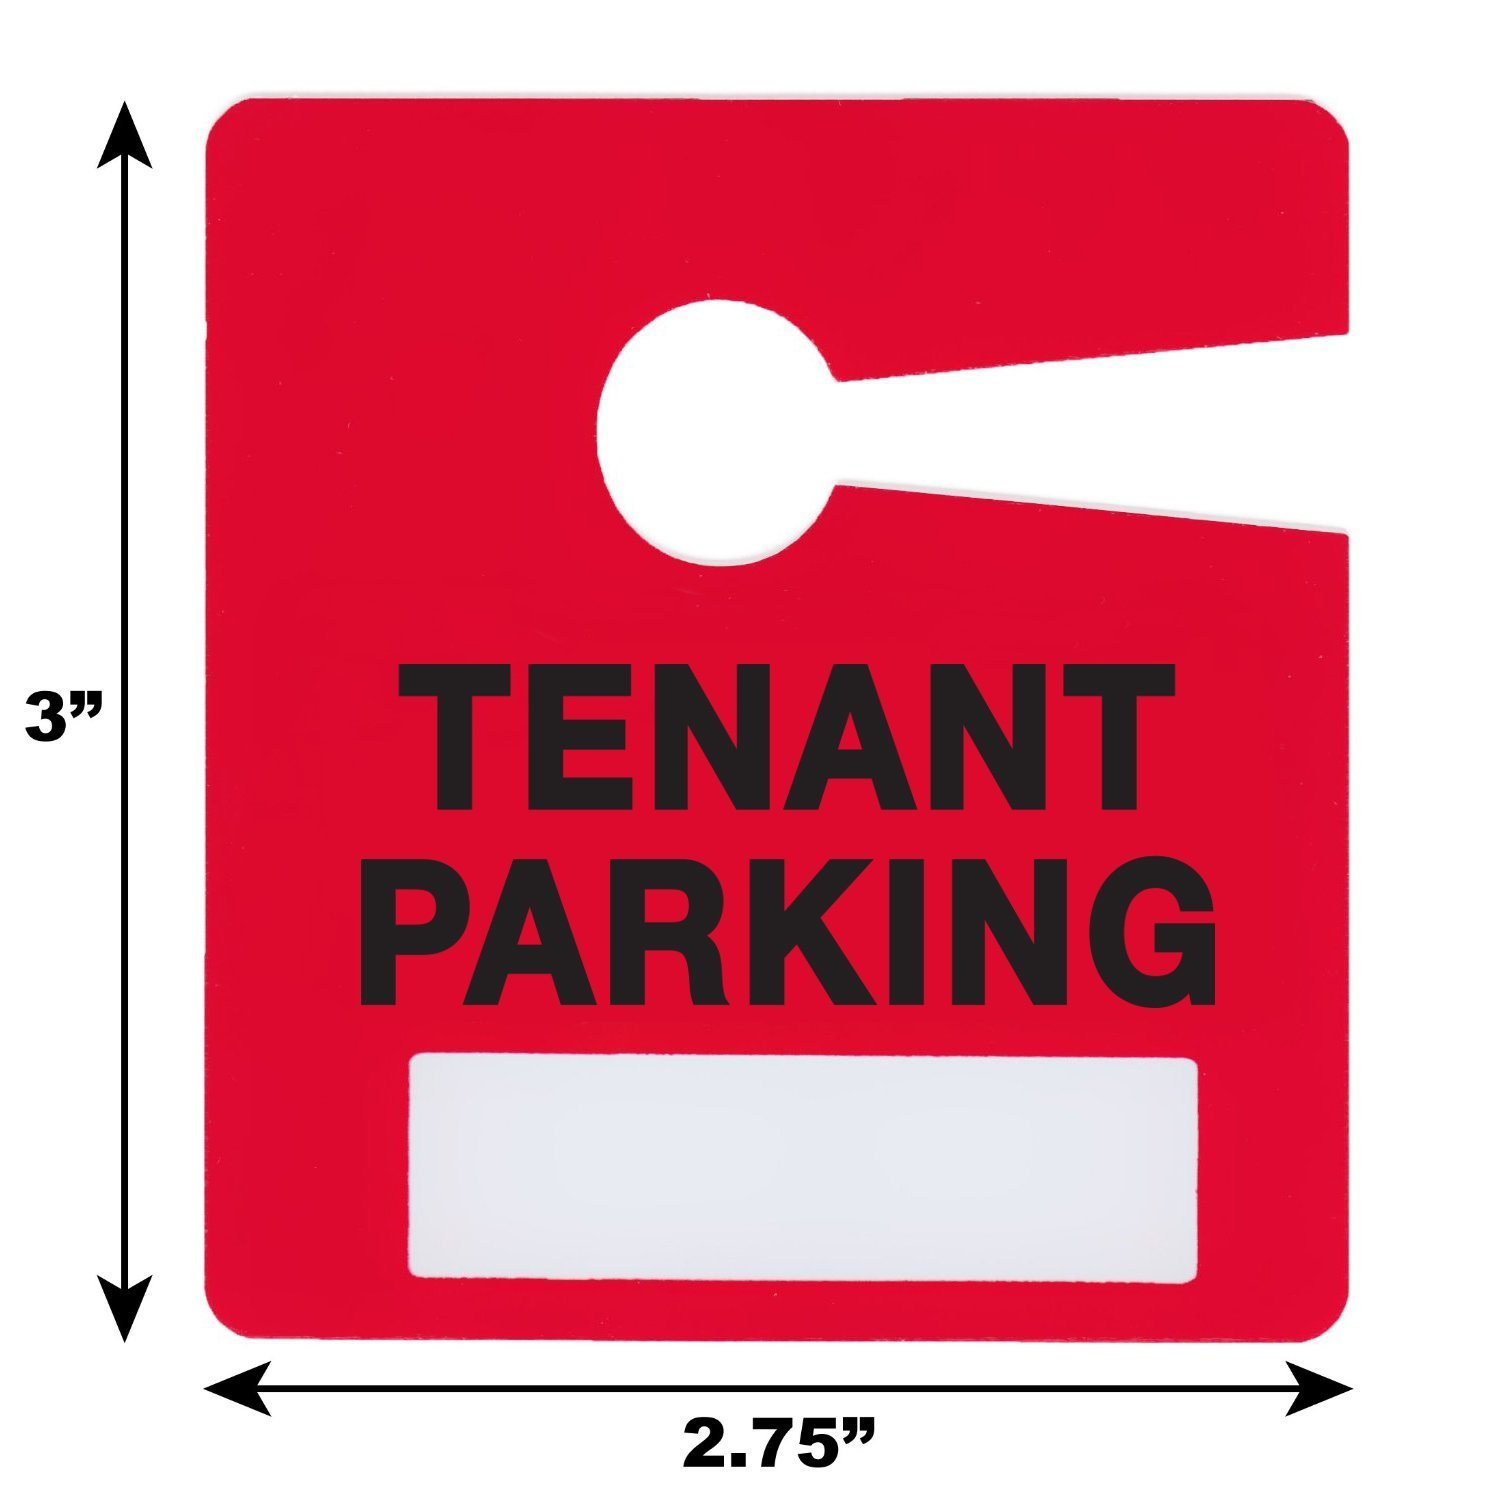 Tenant Parking Permit Pass Stock Hang Tags for Landlords, Commercial Office Buildings, Car Lots, Apartments, by Milcoast,10 Pack (Red) by Milcoast (Image #2)